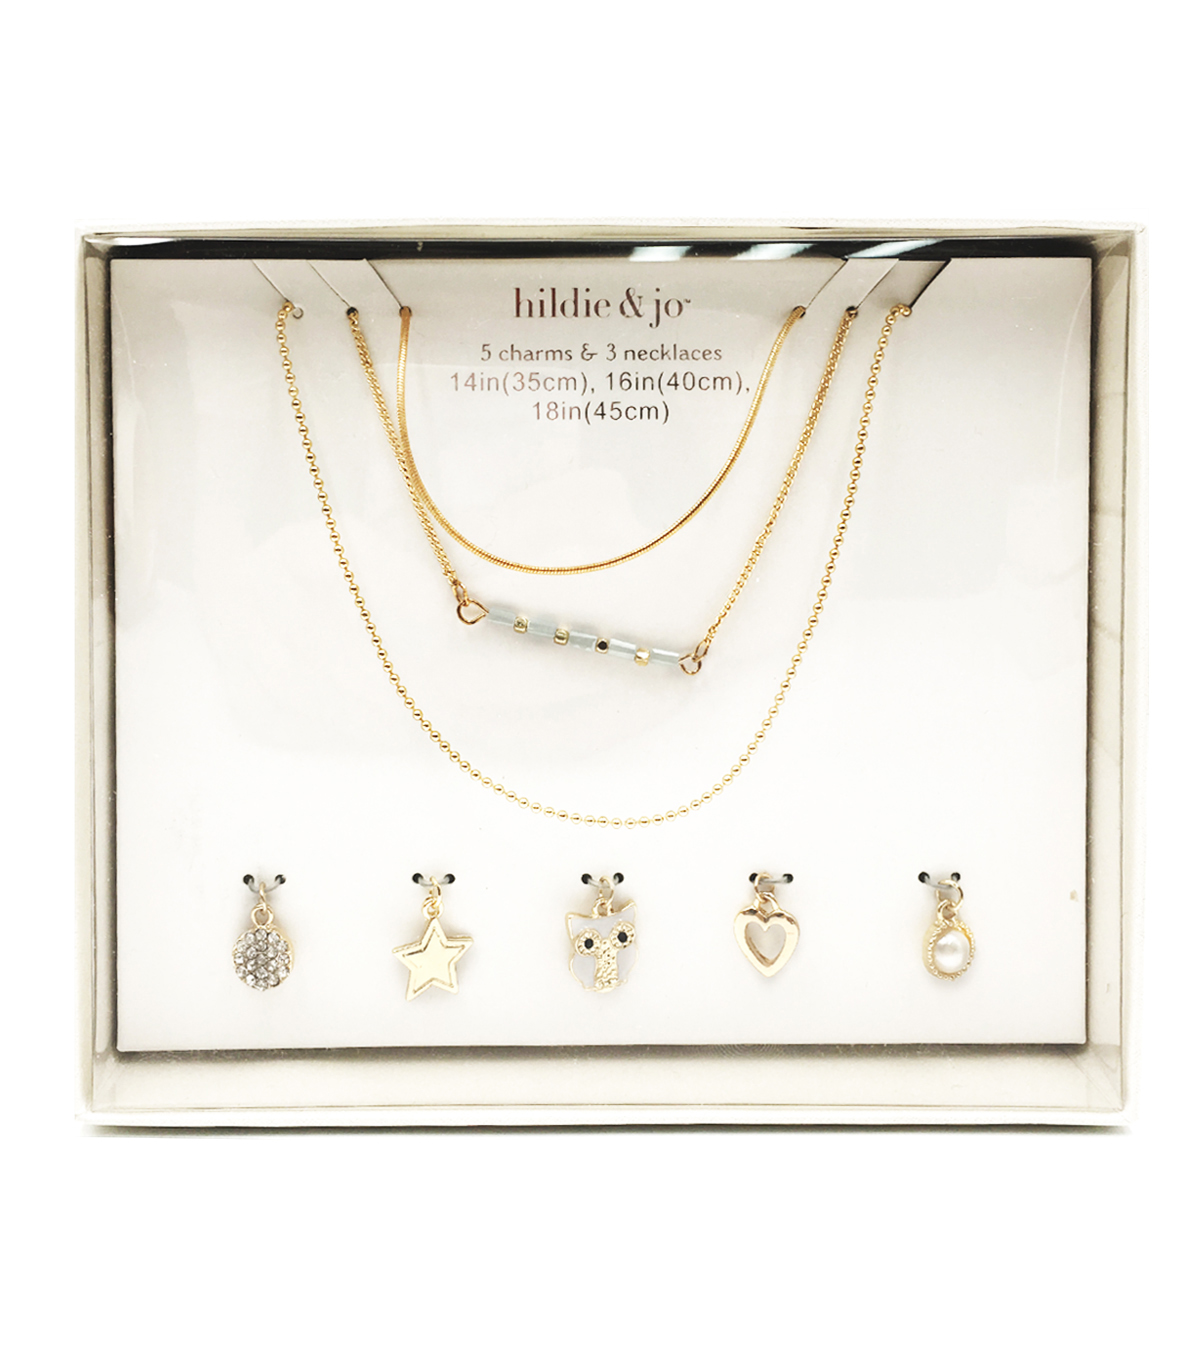 hildie & jo Gold Charms & Necklaces 2